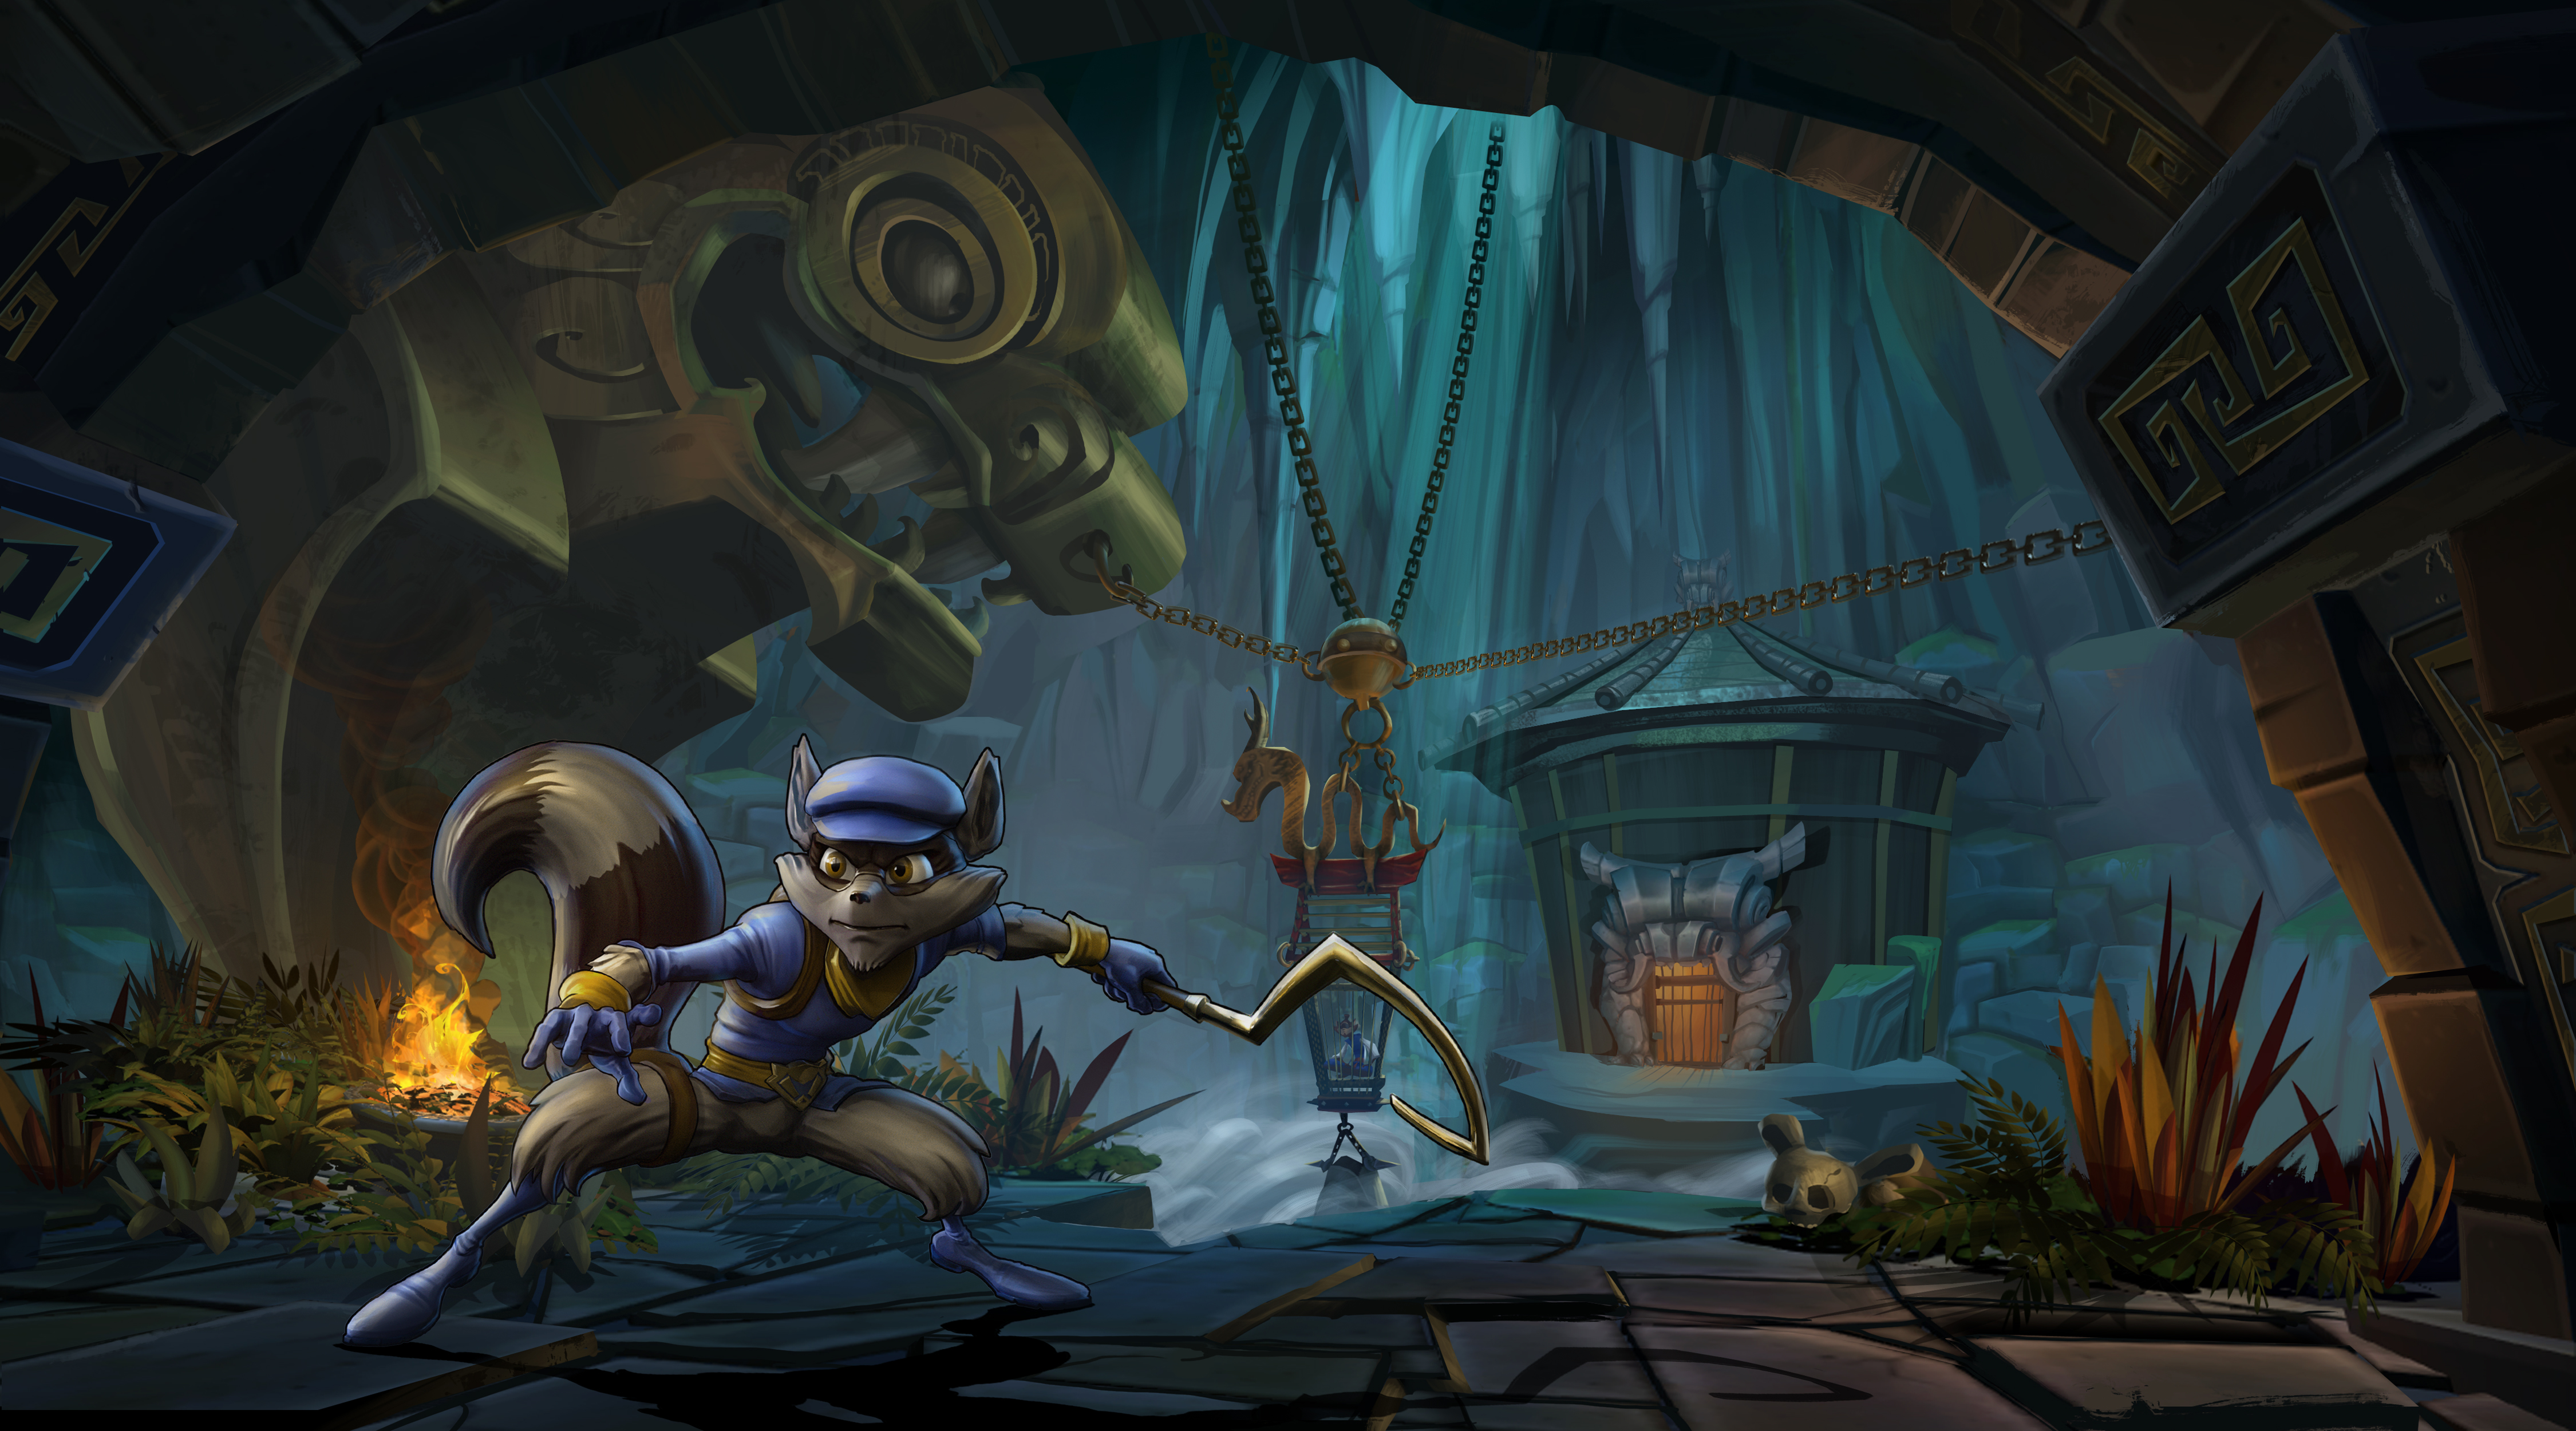 Sly Cooper Thieves in Time video game wallpapers Wallpaper 108 of 4500x2500